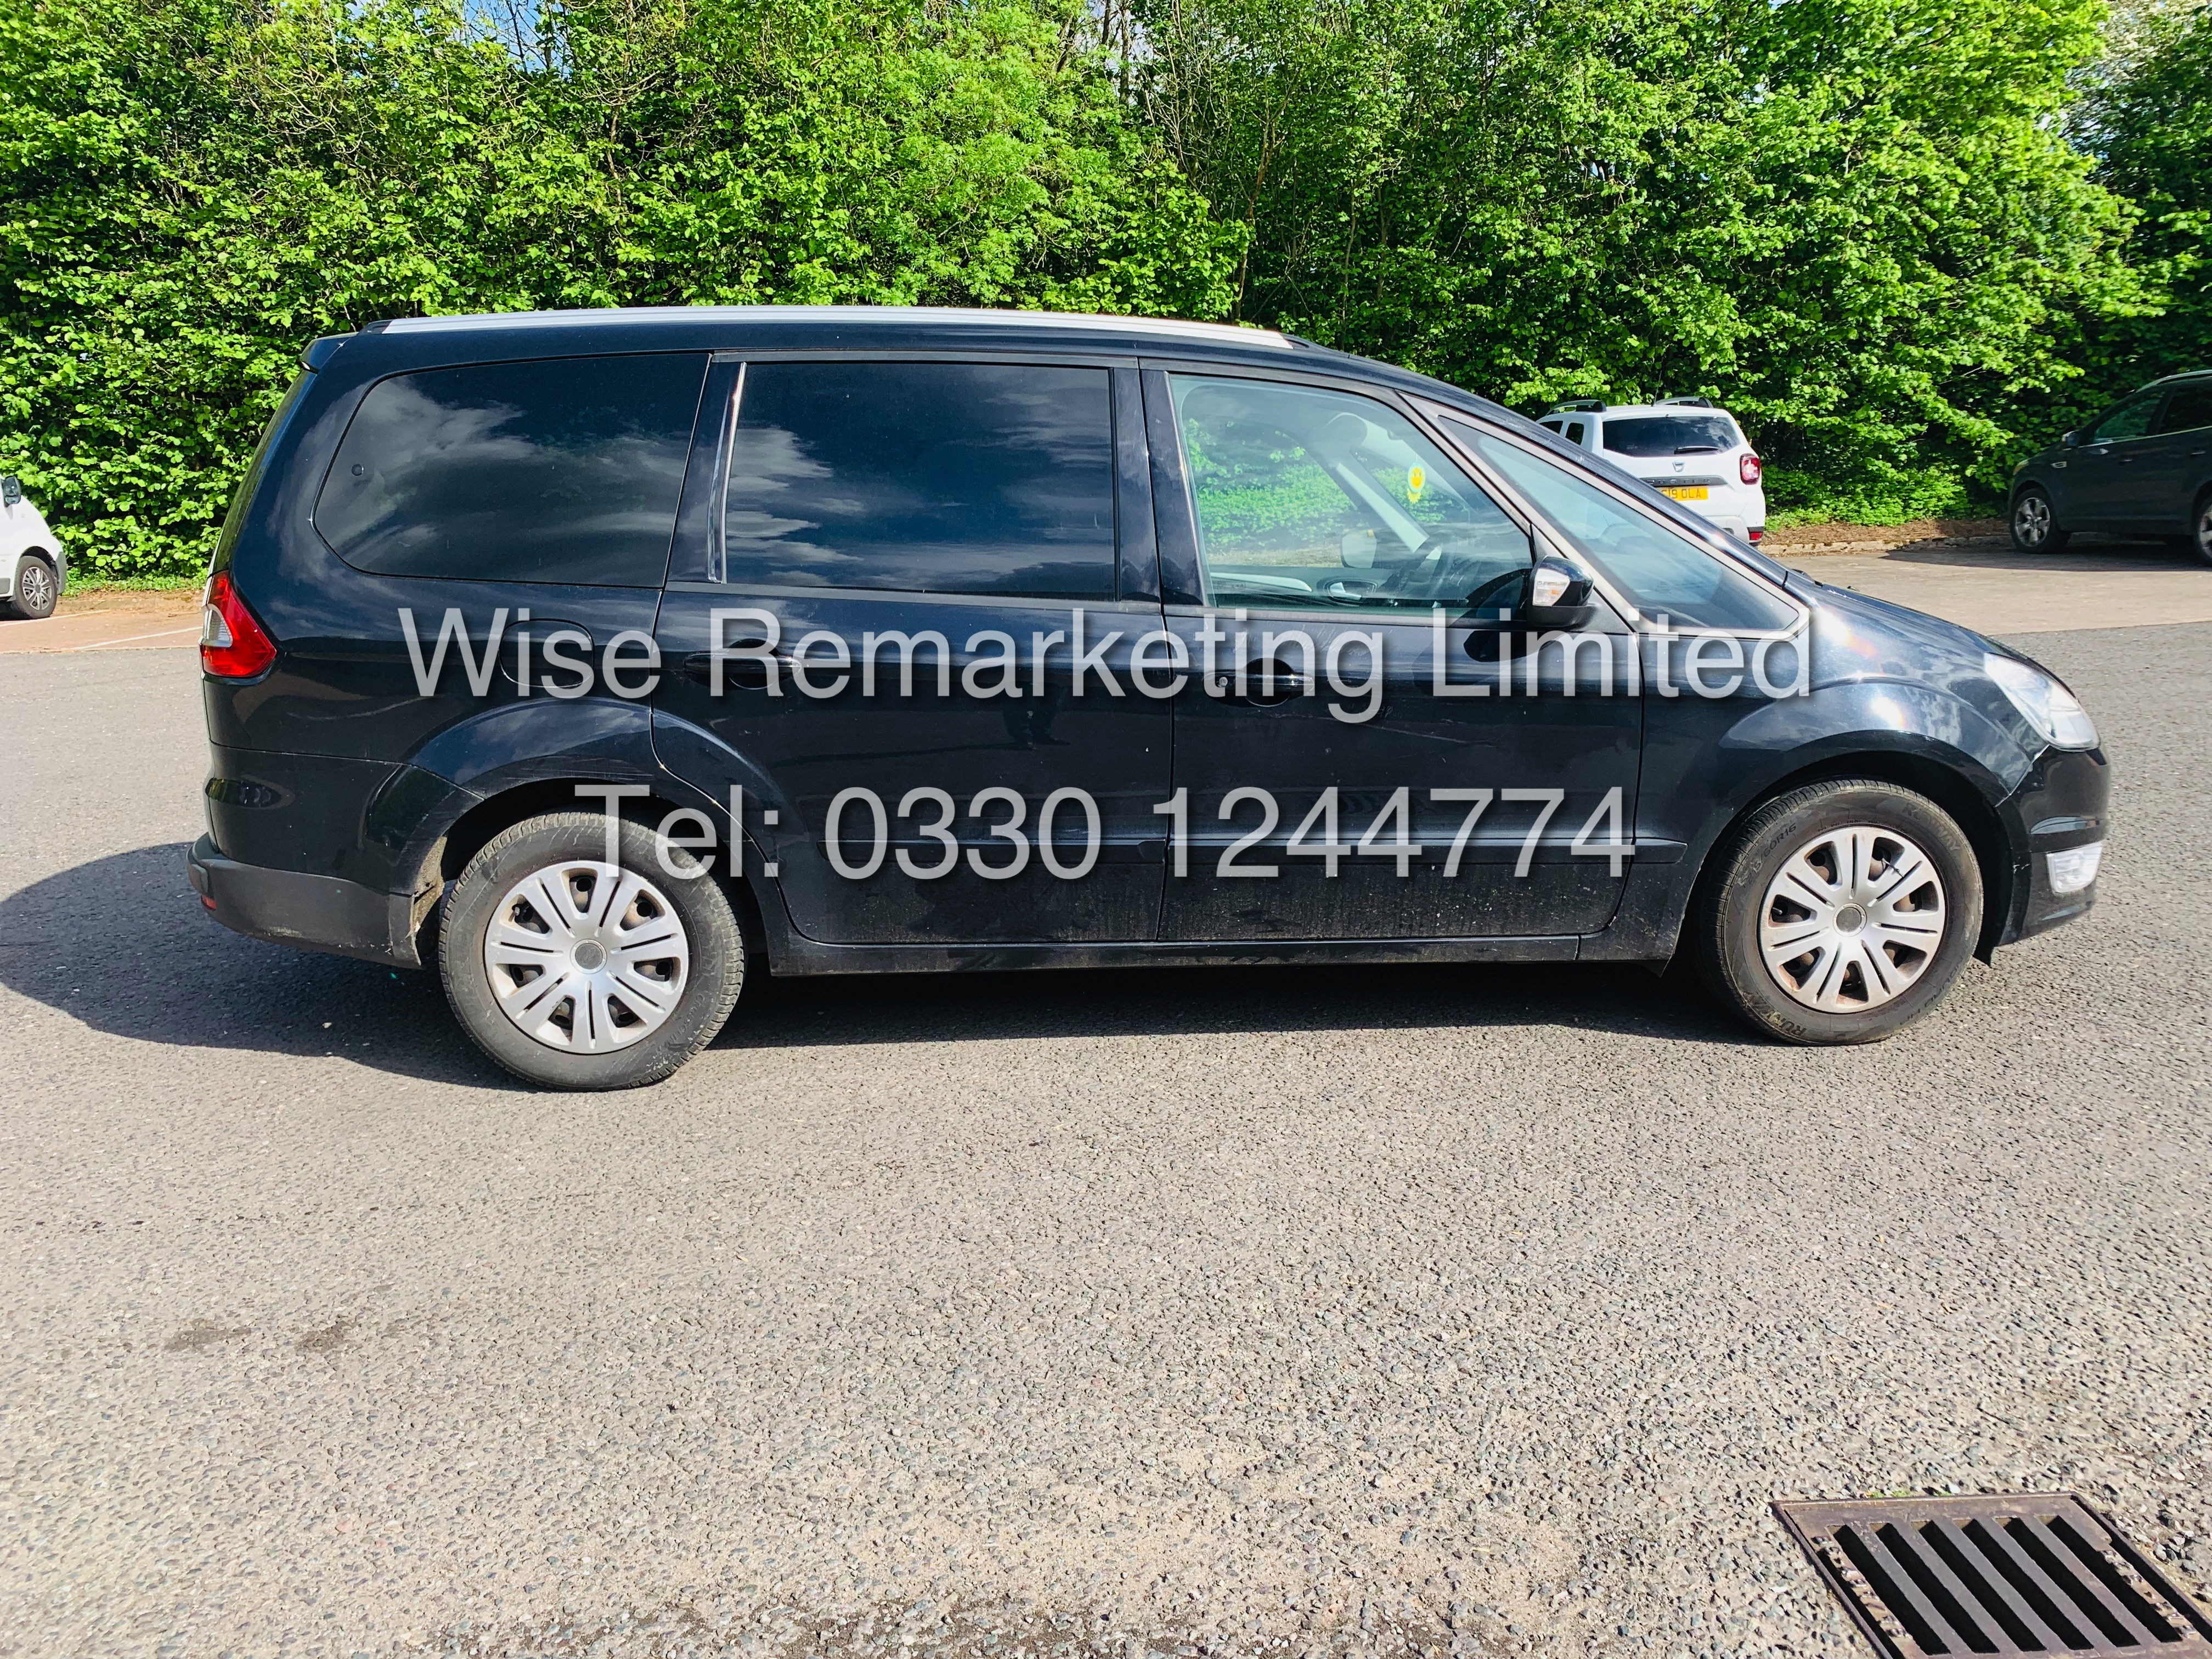 FORD GALAXY ZETEC 2.0L TDCI AUTO 7 SEATER MPV 63 REG *1 OWNER* - Image 3 of 18